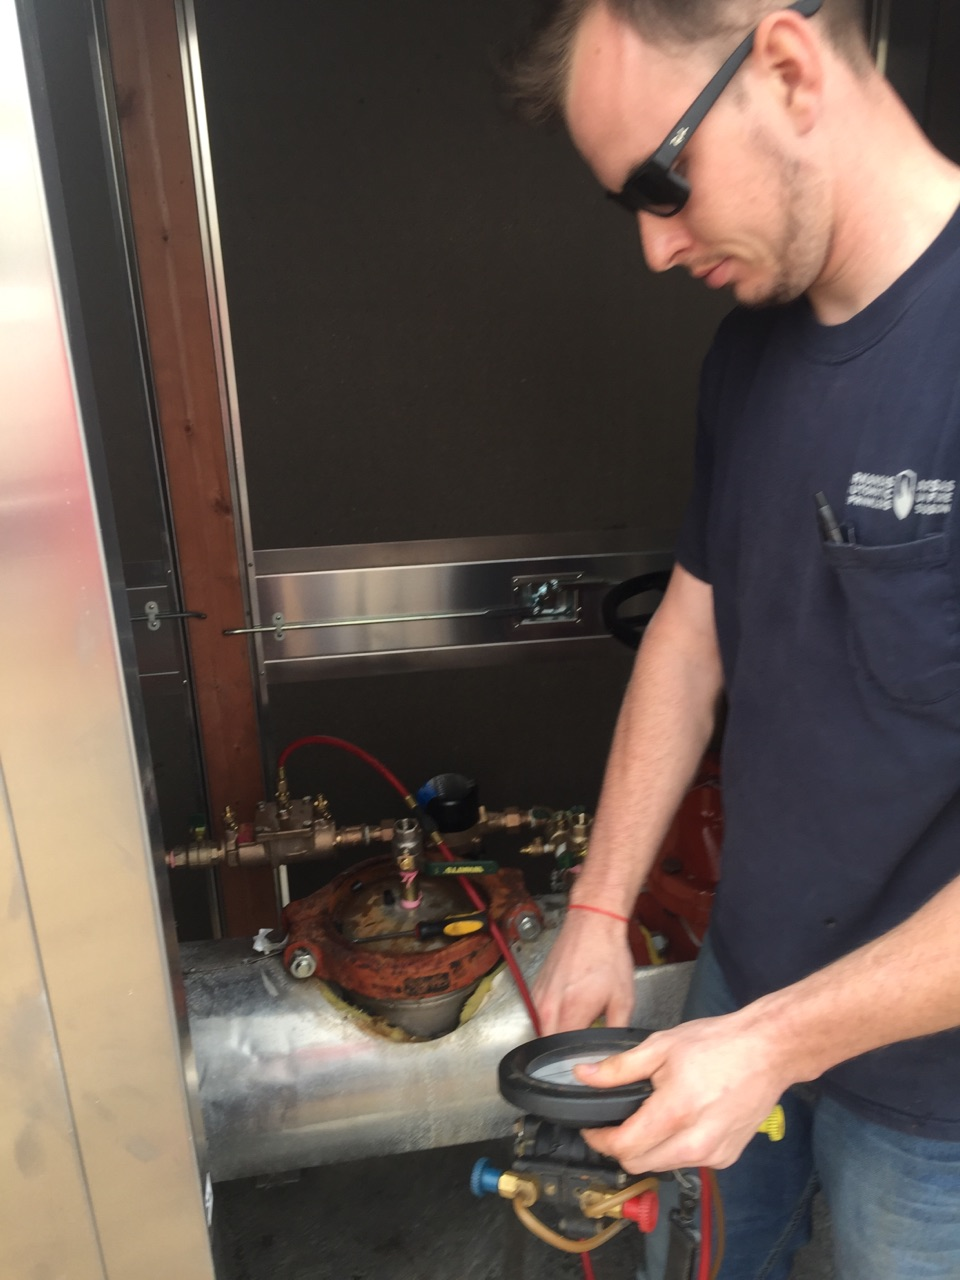 tester working in an aluminum enclosure